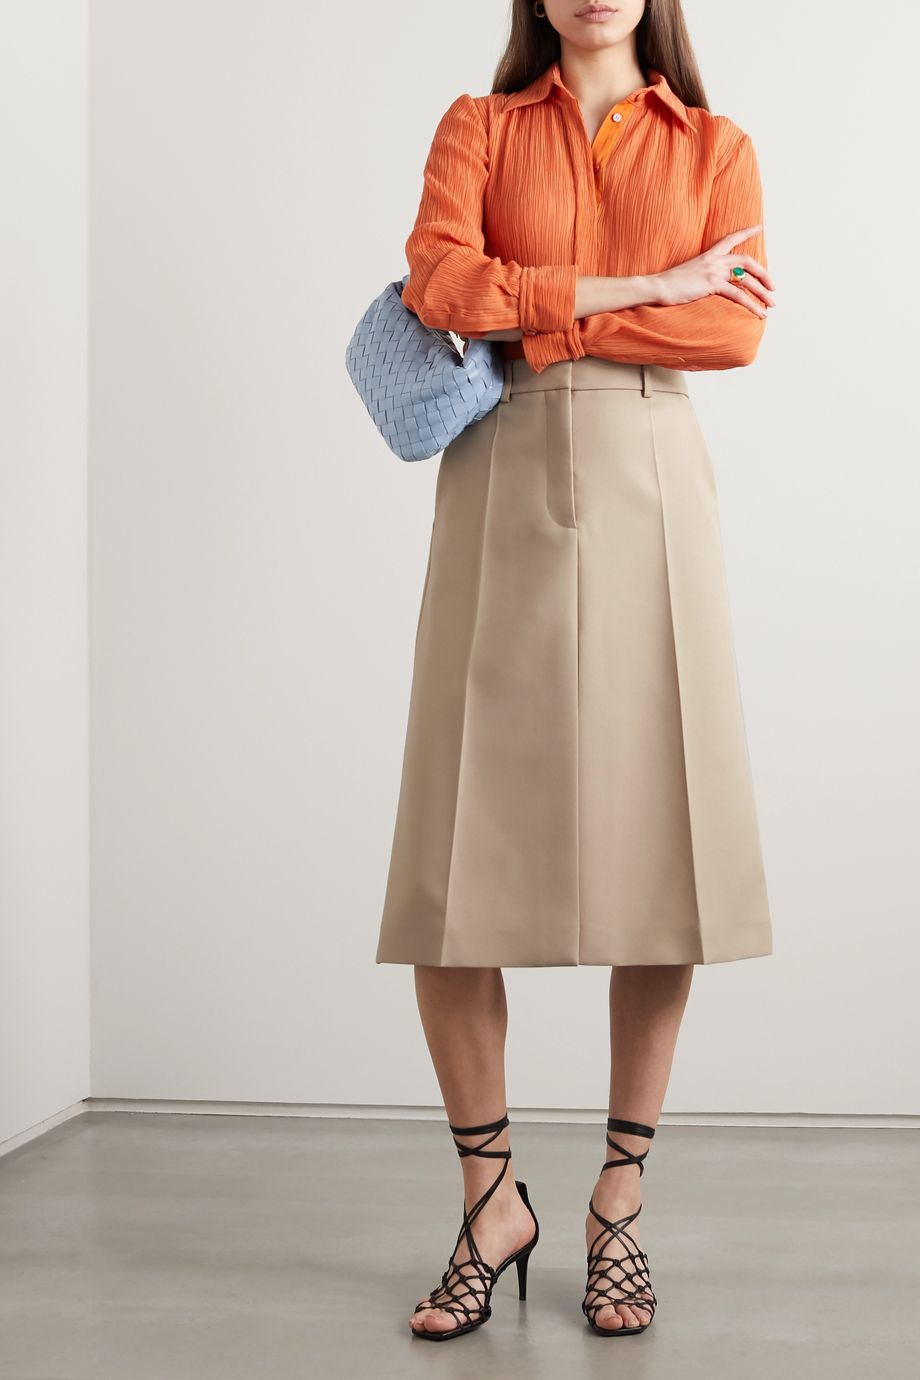 Stella McCartney + NET SUSTAIN Alisha twill skirt